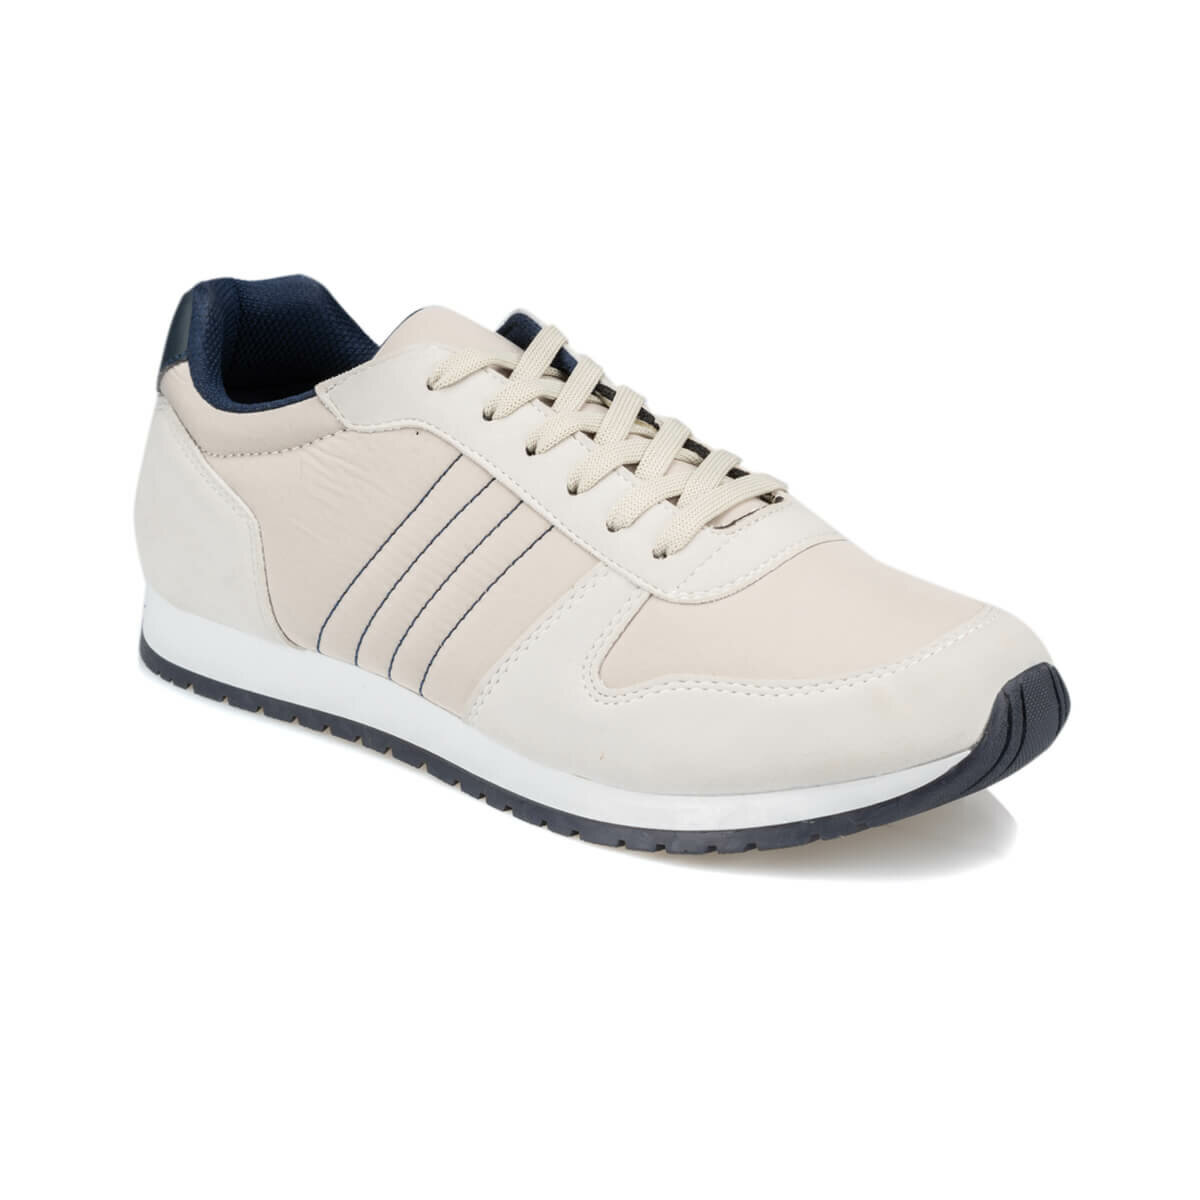 FLO 91. 356030.M Mink Male Sneaker Shoes Polaris